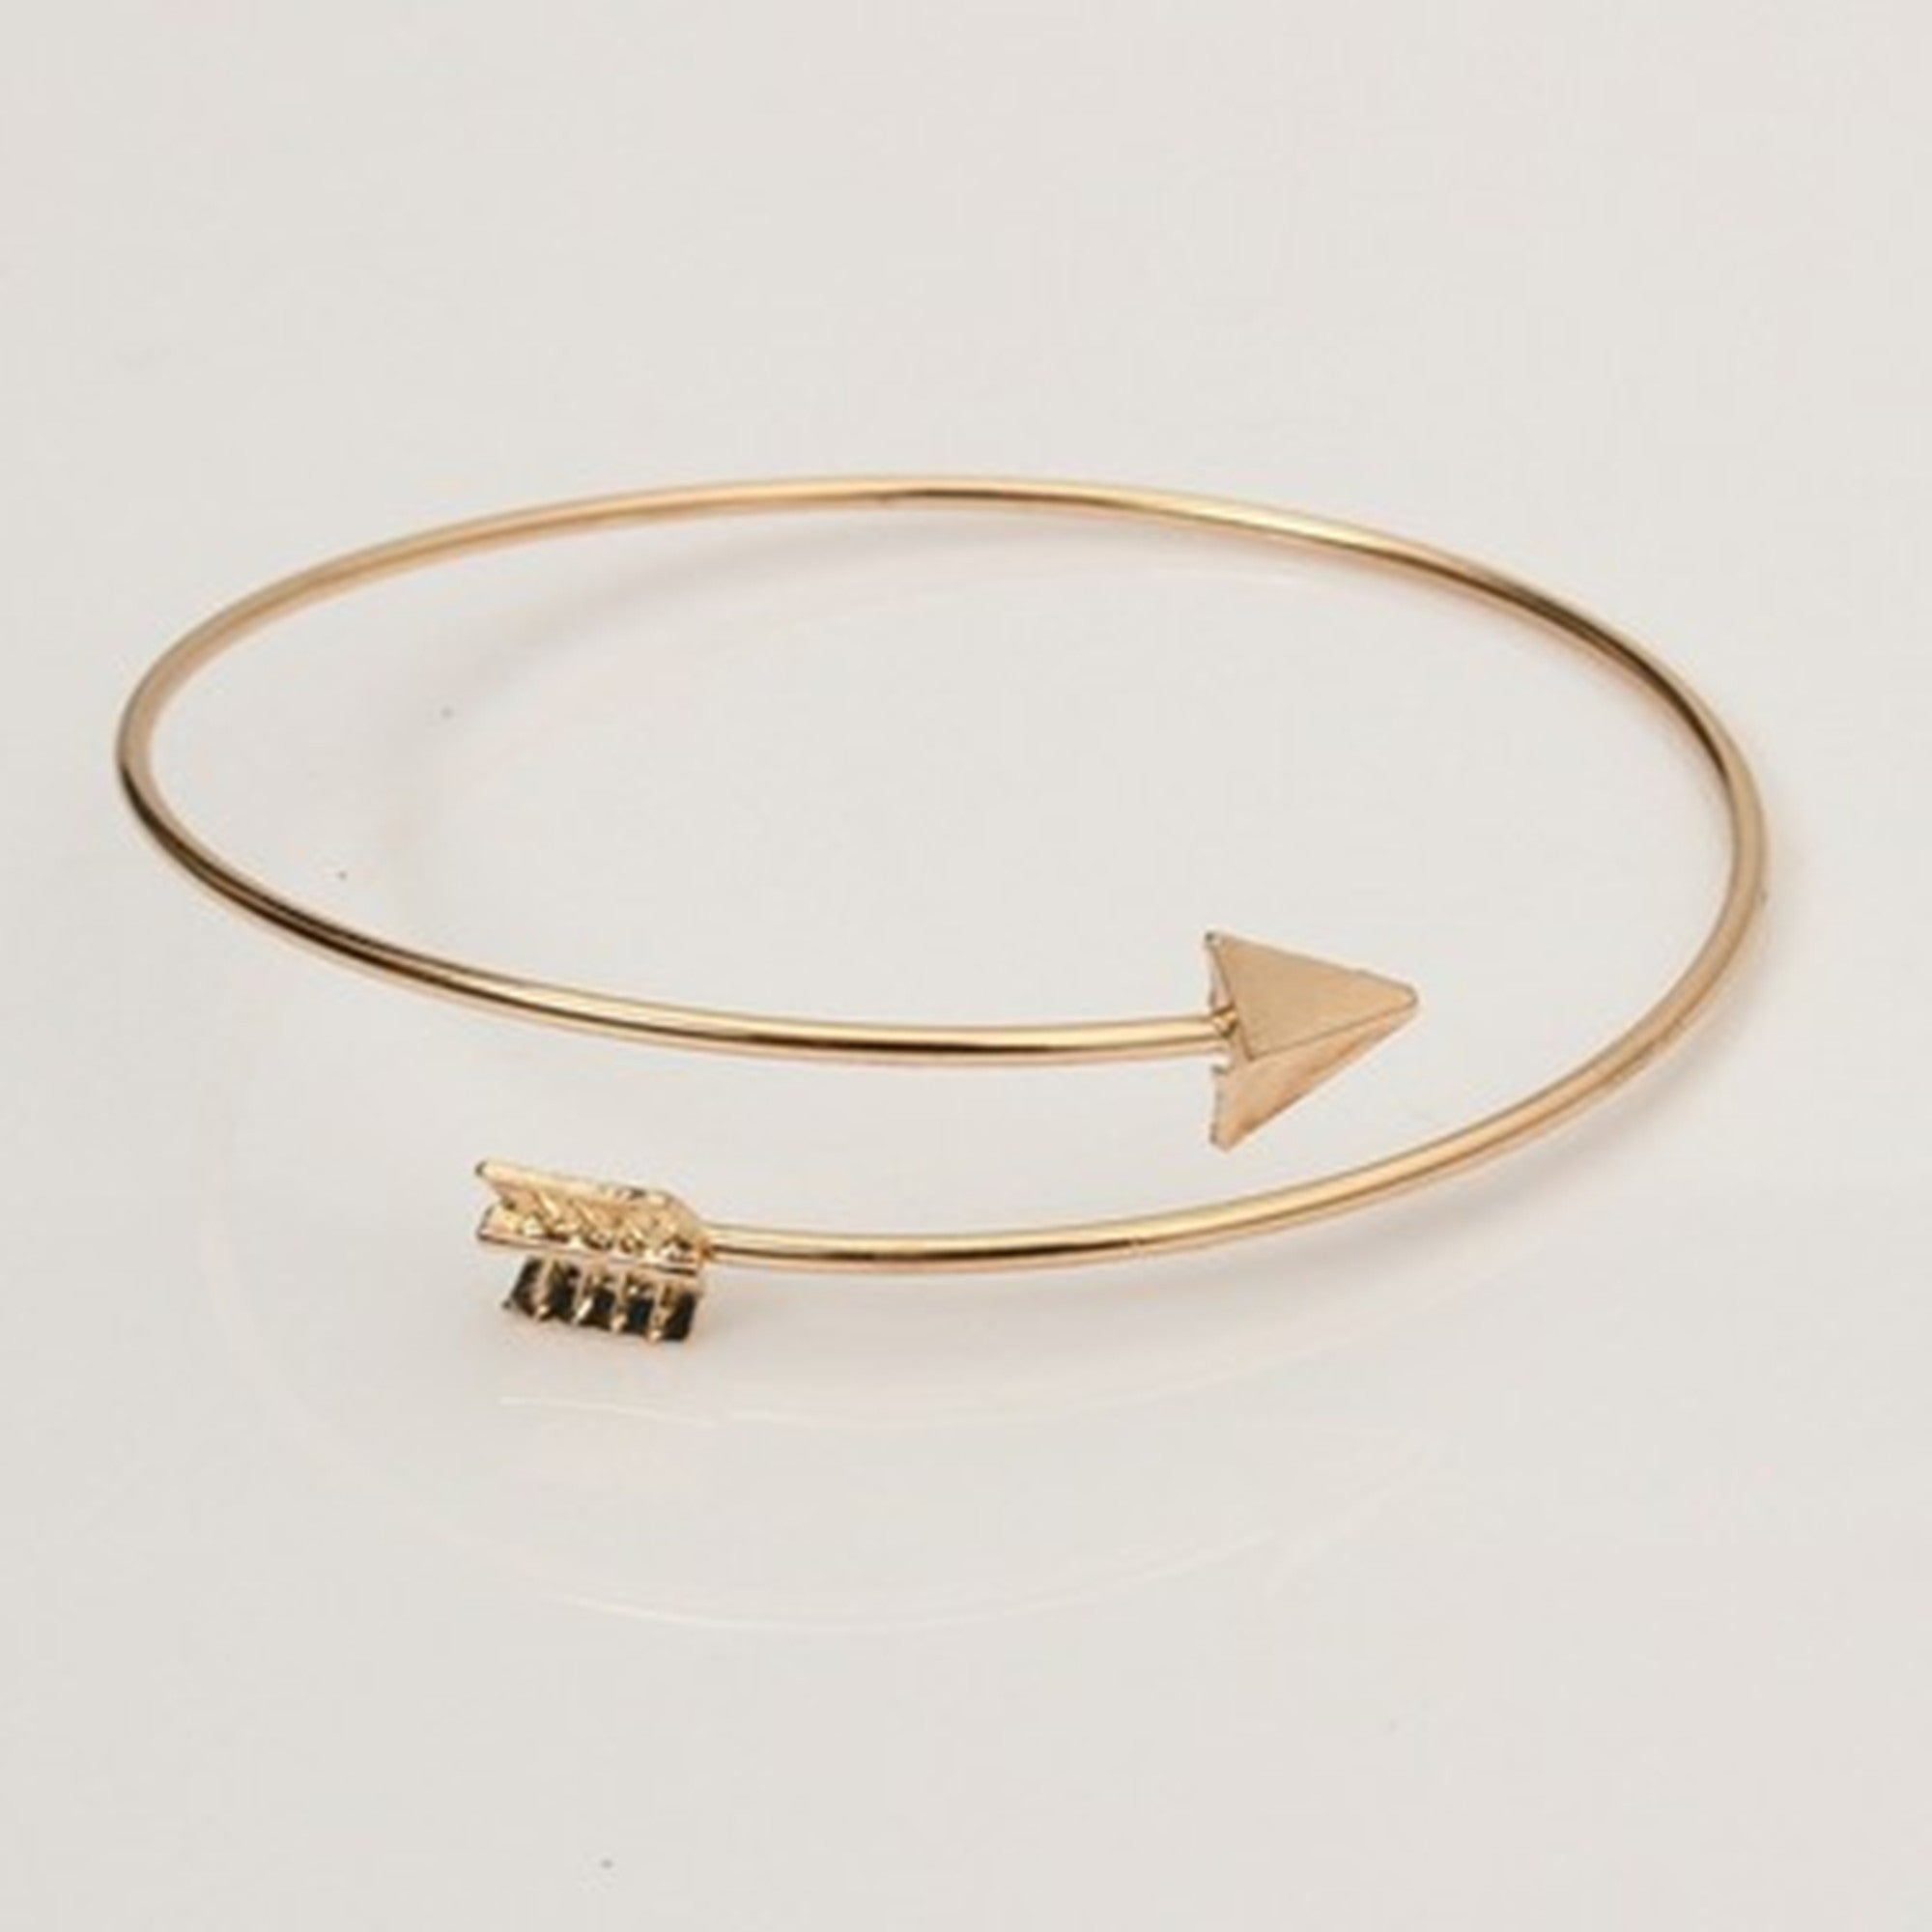 arrow jewelry bangle thoughts aquarian hammered bracelet img products